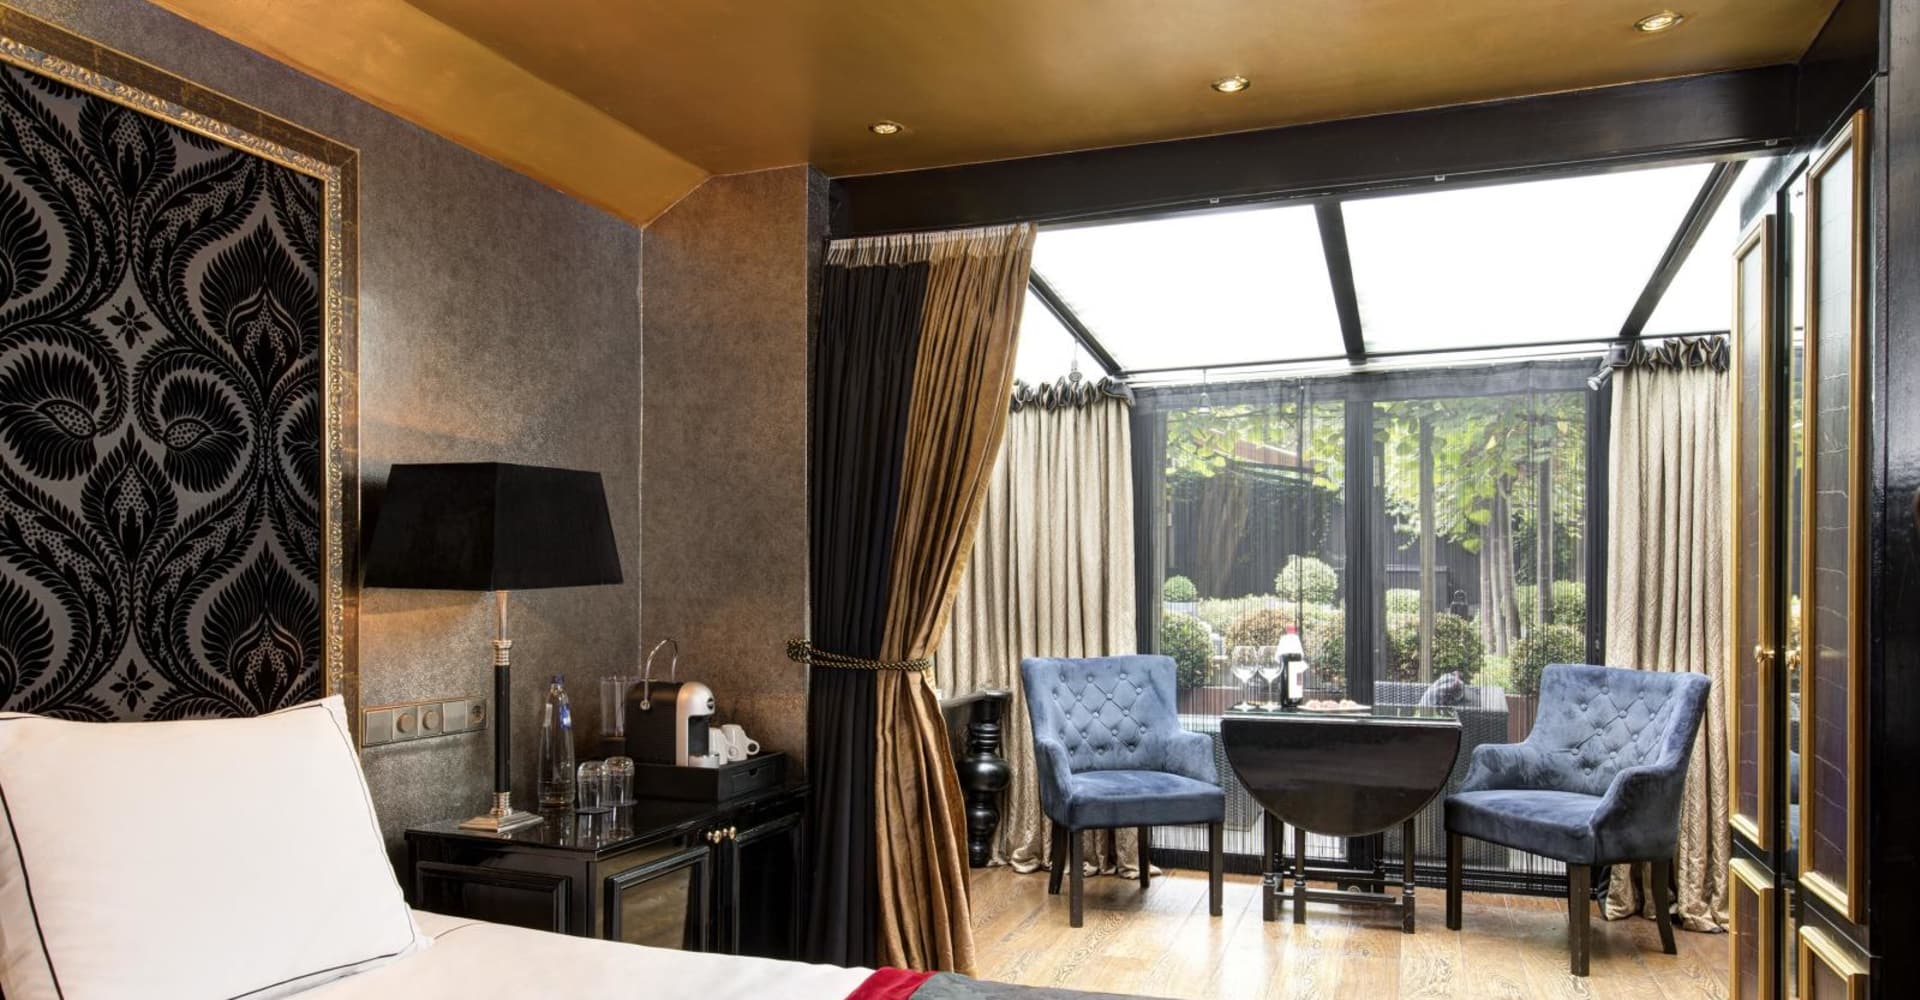 Offers - The Toren Amsterdam - By the Pavilions